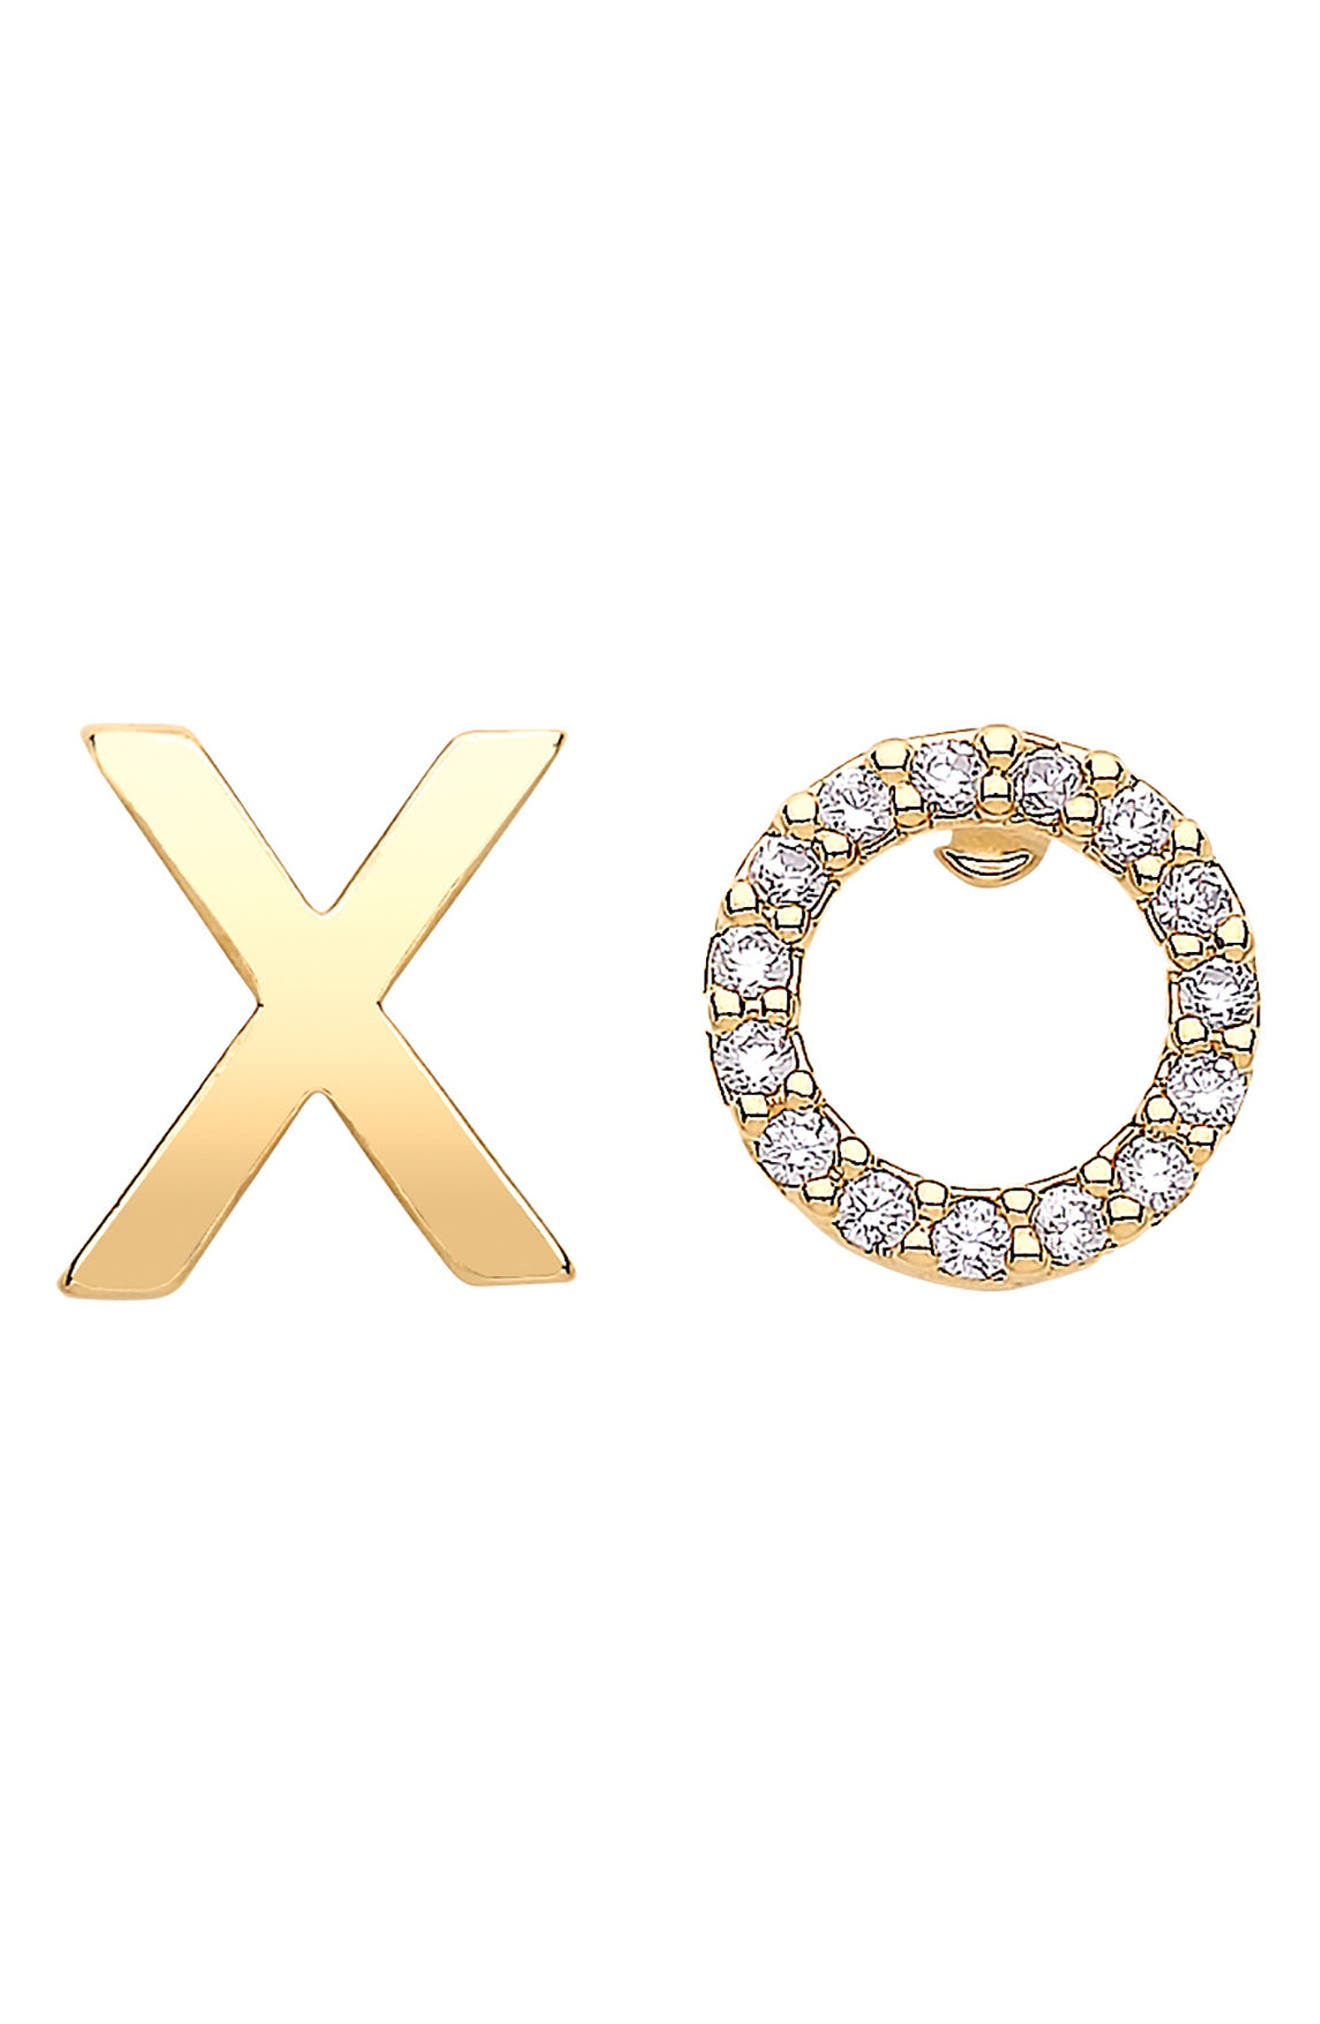 ESTELLA BARTLETT Xo Stud Earrings in Gold